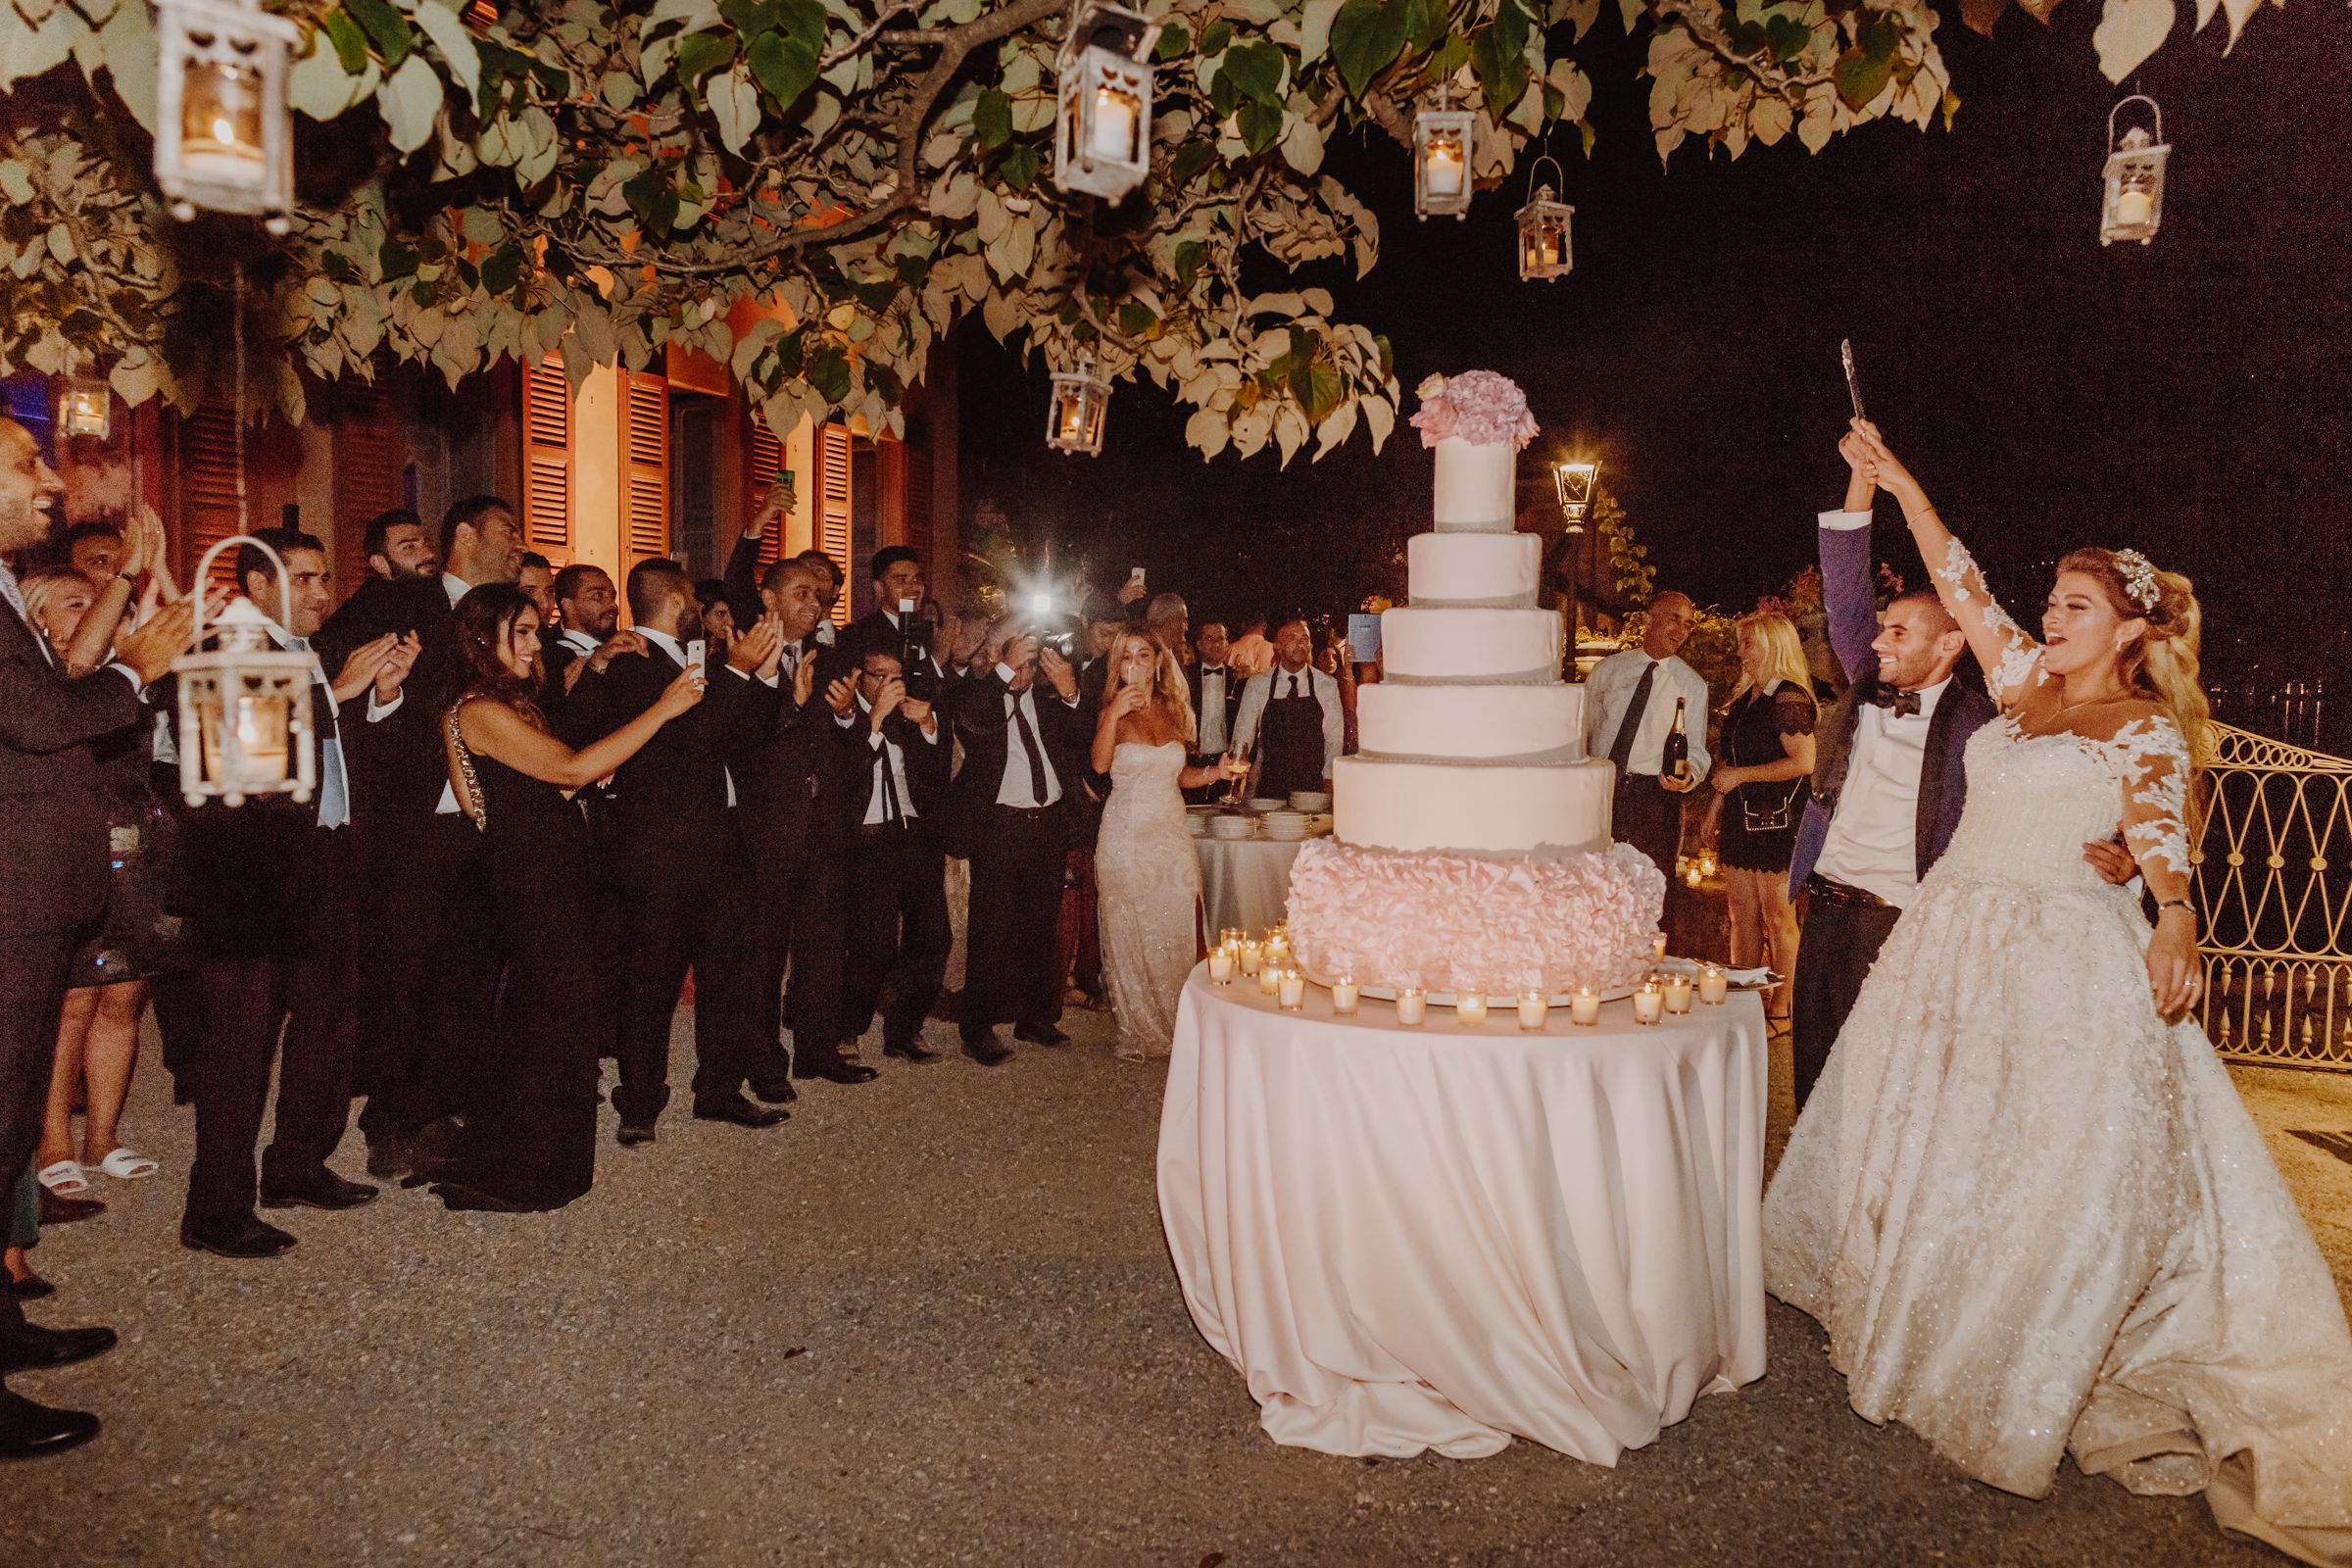 cake cutting wedding como lake.jpg